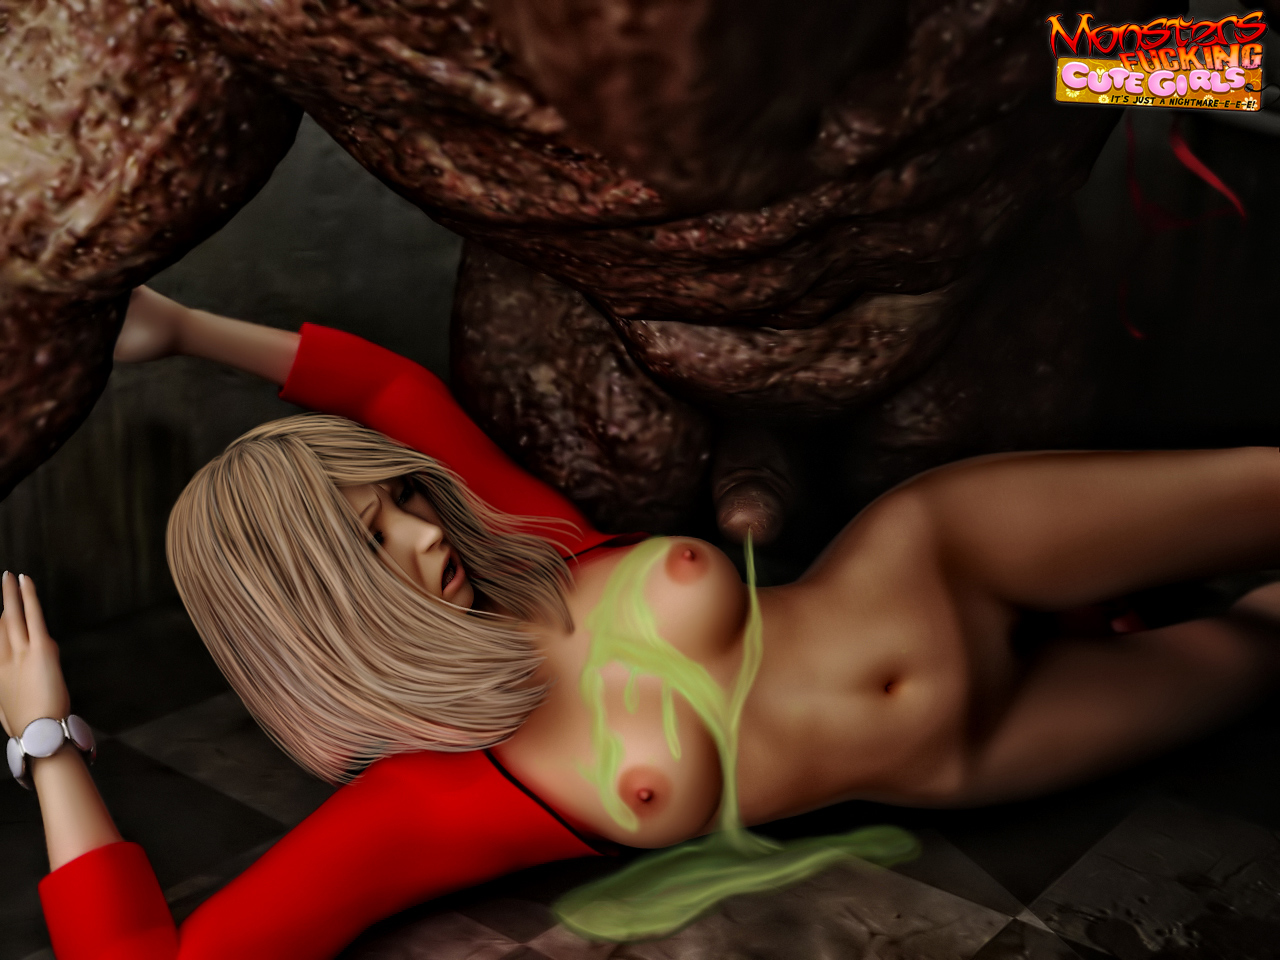 Monster sex 3d blue haired girl adult comics